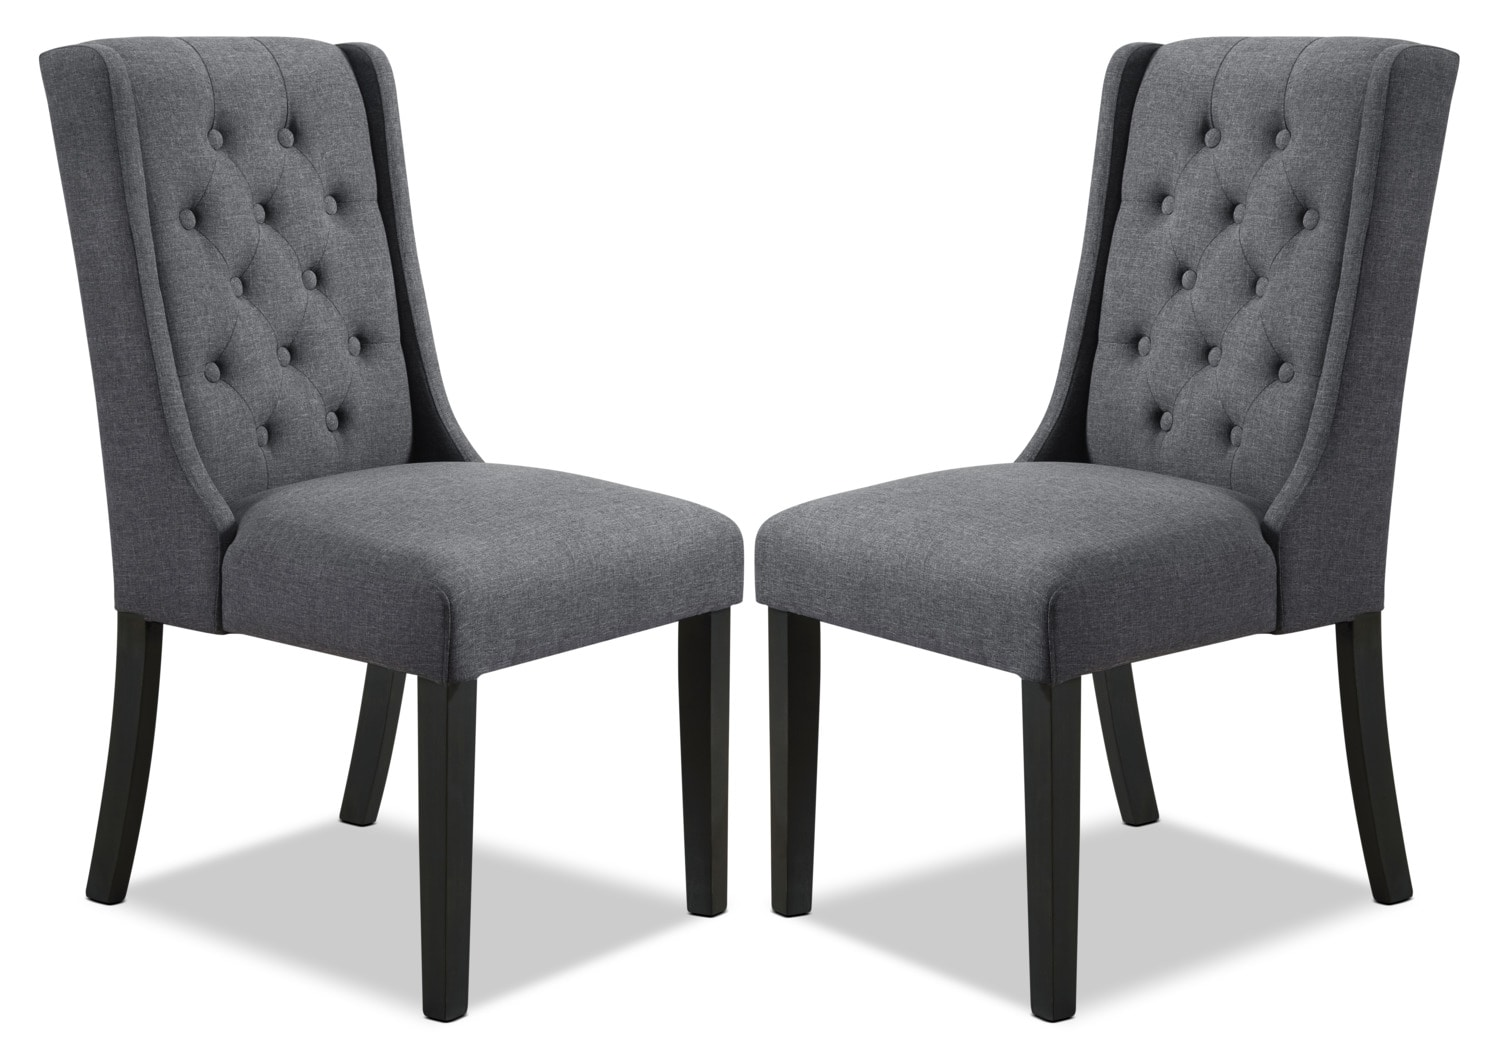 Wingback Dining Chairs York Wingback Dining Chair Set Of 2 Grey The Brick